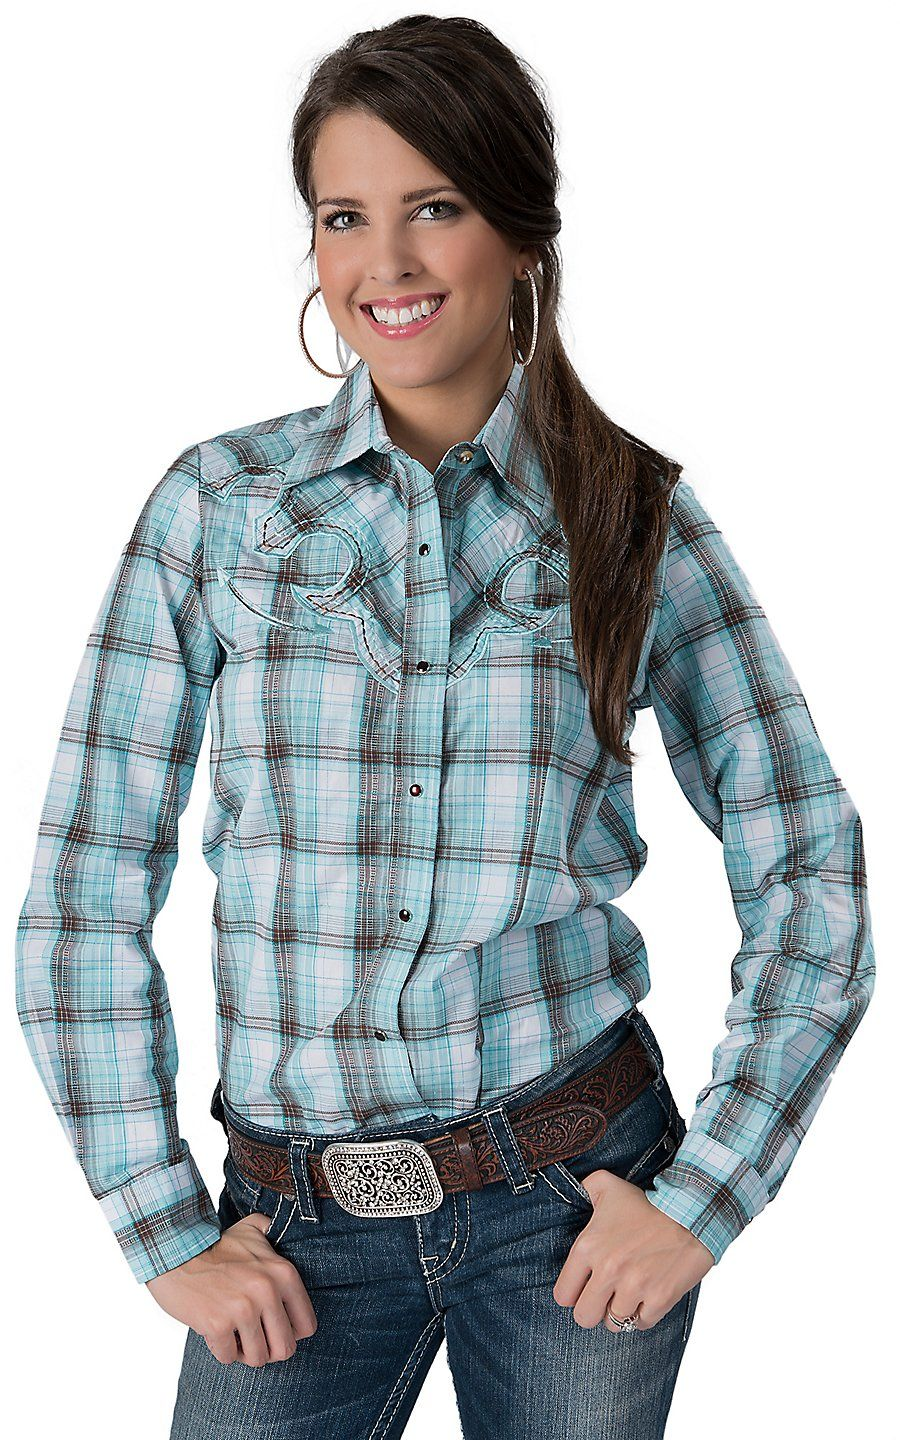 Flannel shirt jeans  Cumberland Outfitters Ladies White with Black Piping Long Sleeve